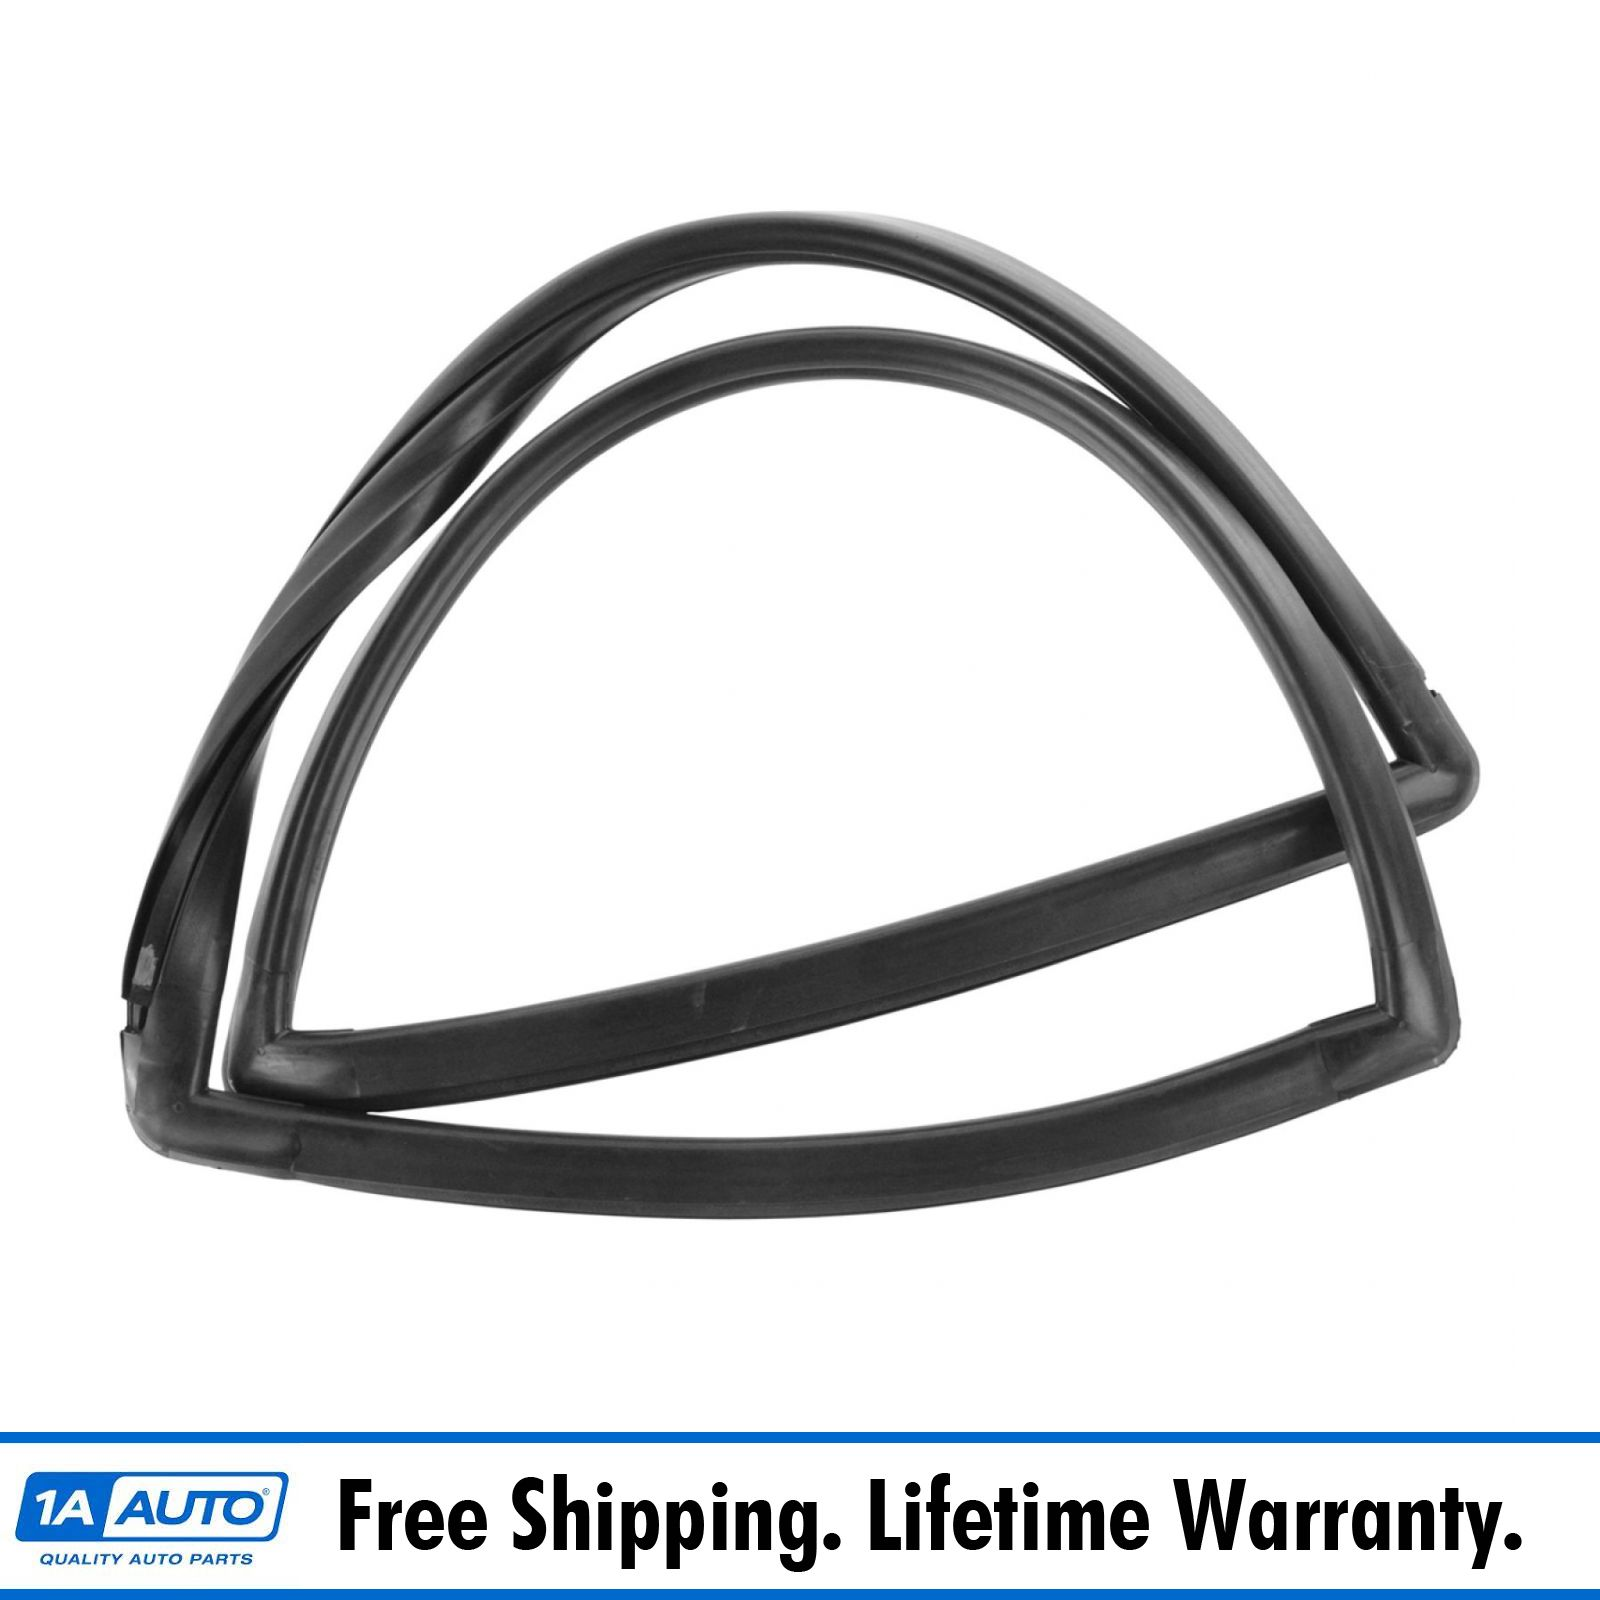 Wagoneer 1984-1996 New Rear Liftgate Glass Weatherstrip Seal for Jeep Cherokee